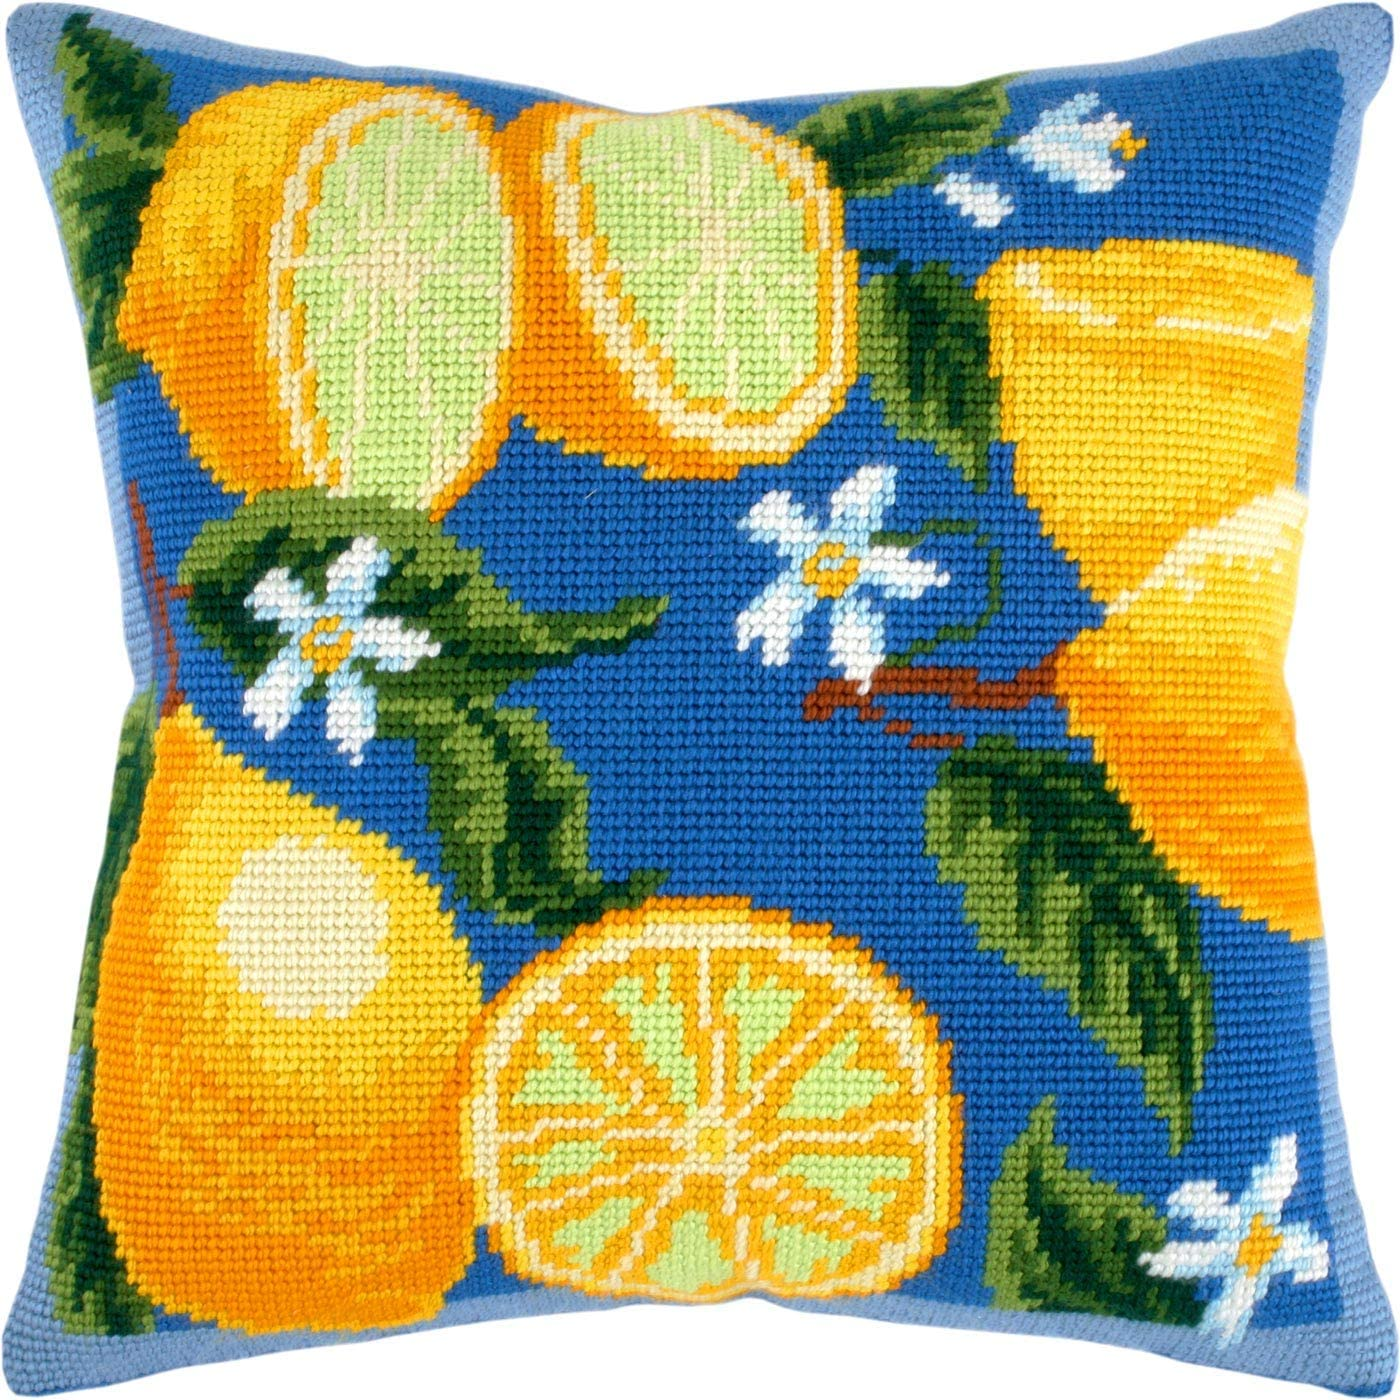 Printed Tapestry Canvas European Quality Throw Pillow 16/×16 Inches Needlepoint Kit Lemons